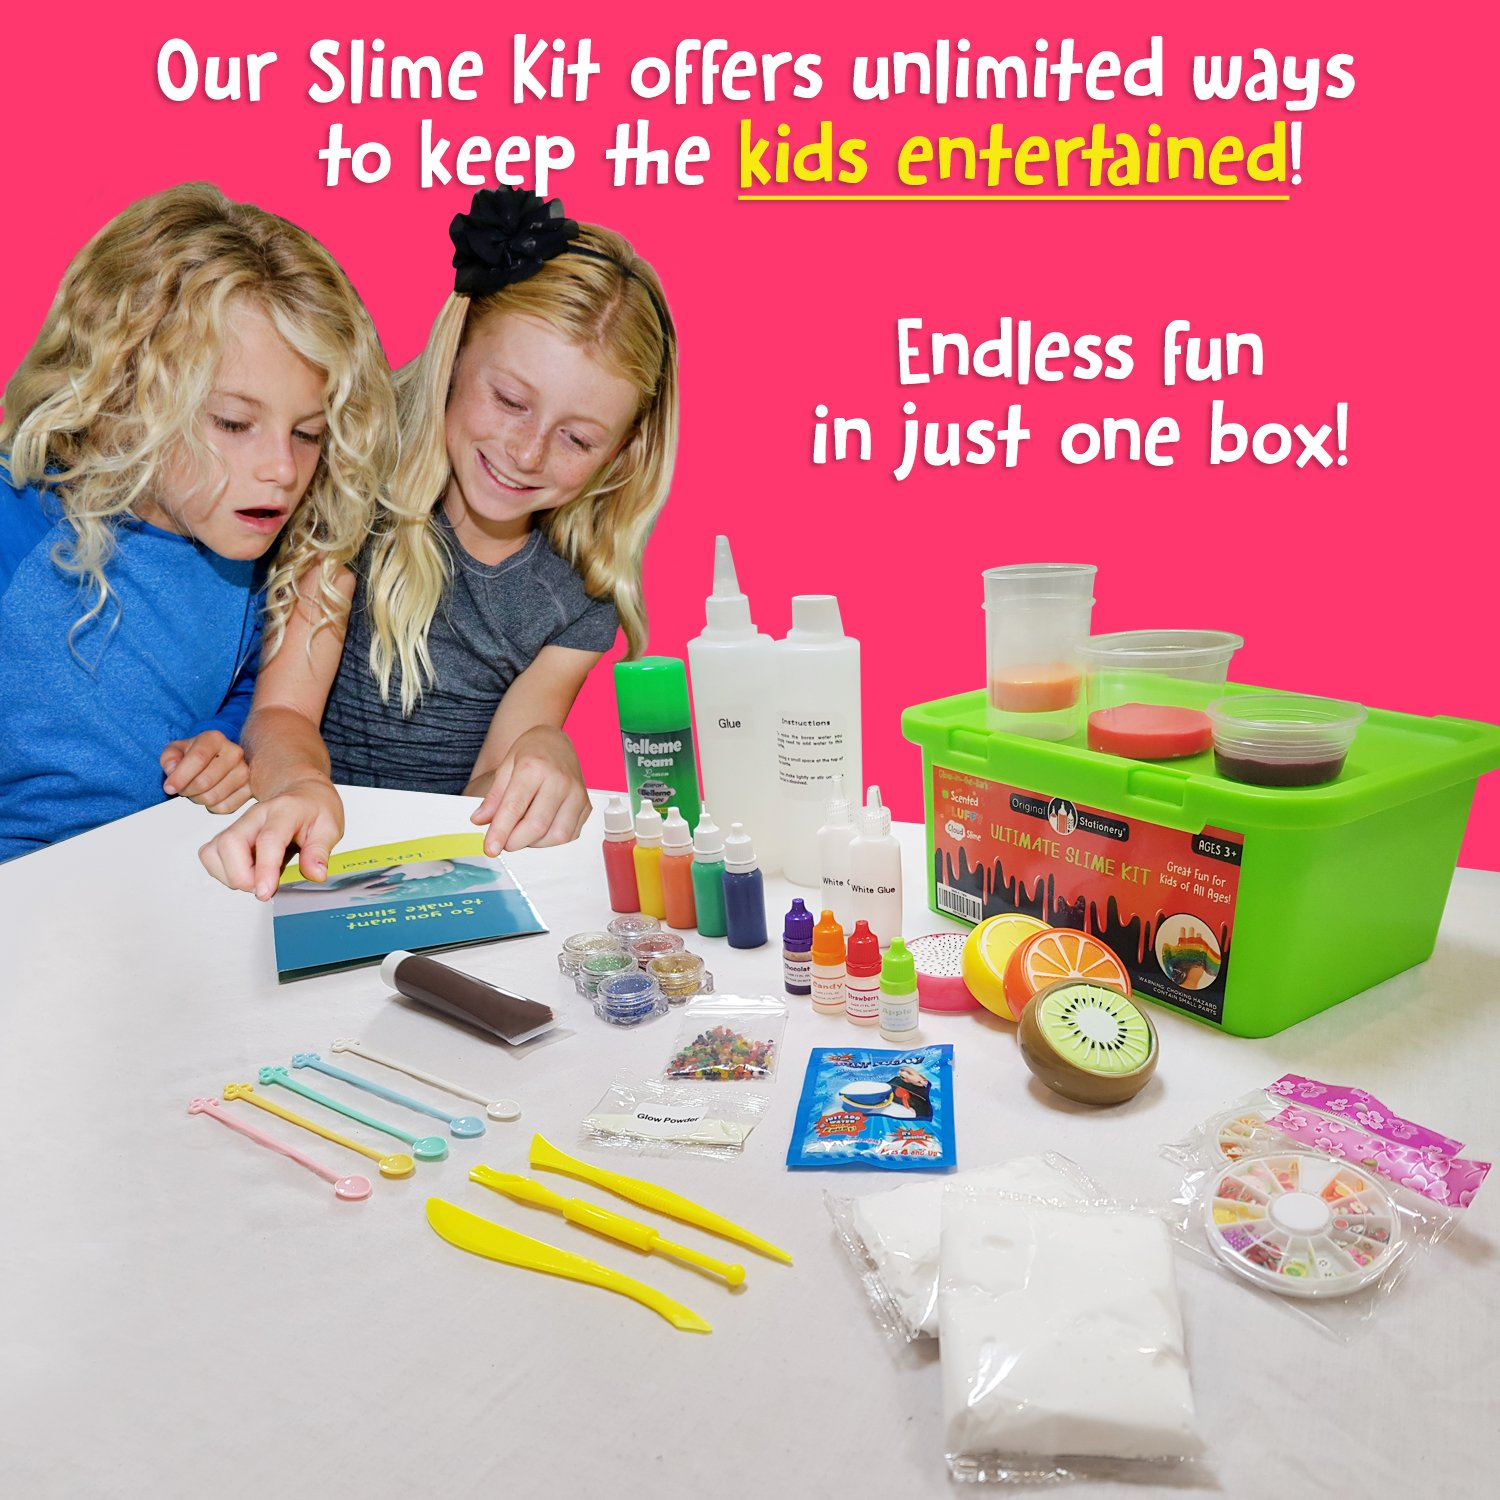 Ultimate Slime Kit Supplies Stuff for Girls and Boys Making Slime [EVERYTHING IN ONE BOX] Kids can Make Unicorn, Glitter, Cloud, Rainbow Slimes and More. Includes Glue and Full instructions. by Original Stationery (Image #2)